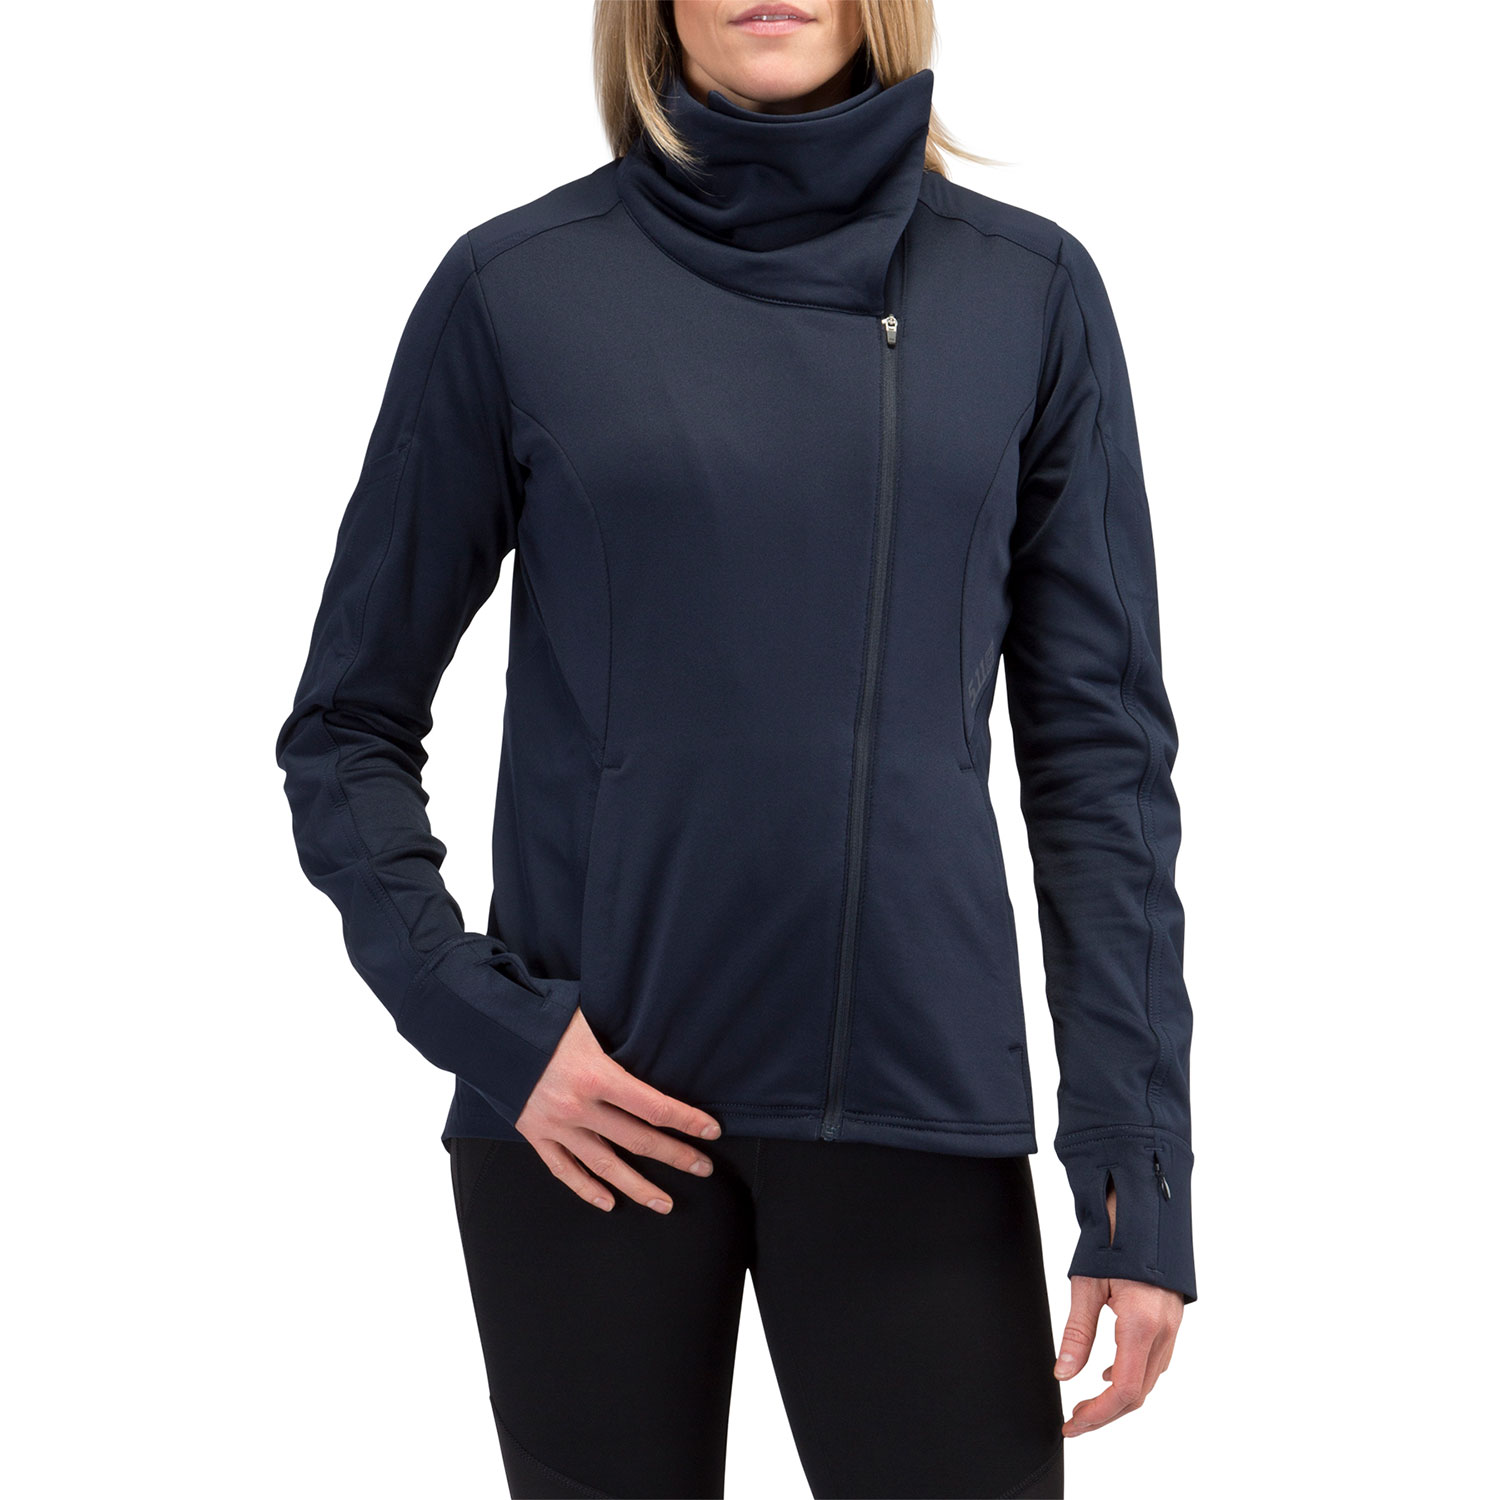 5.11 Womens Kinetic Full Zip